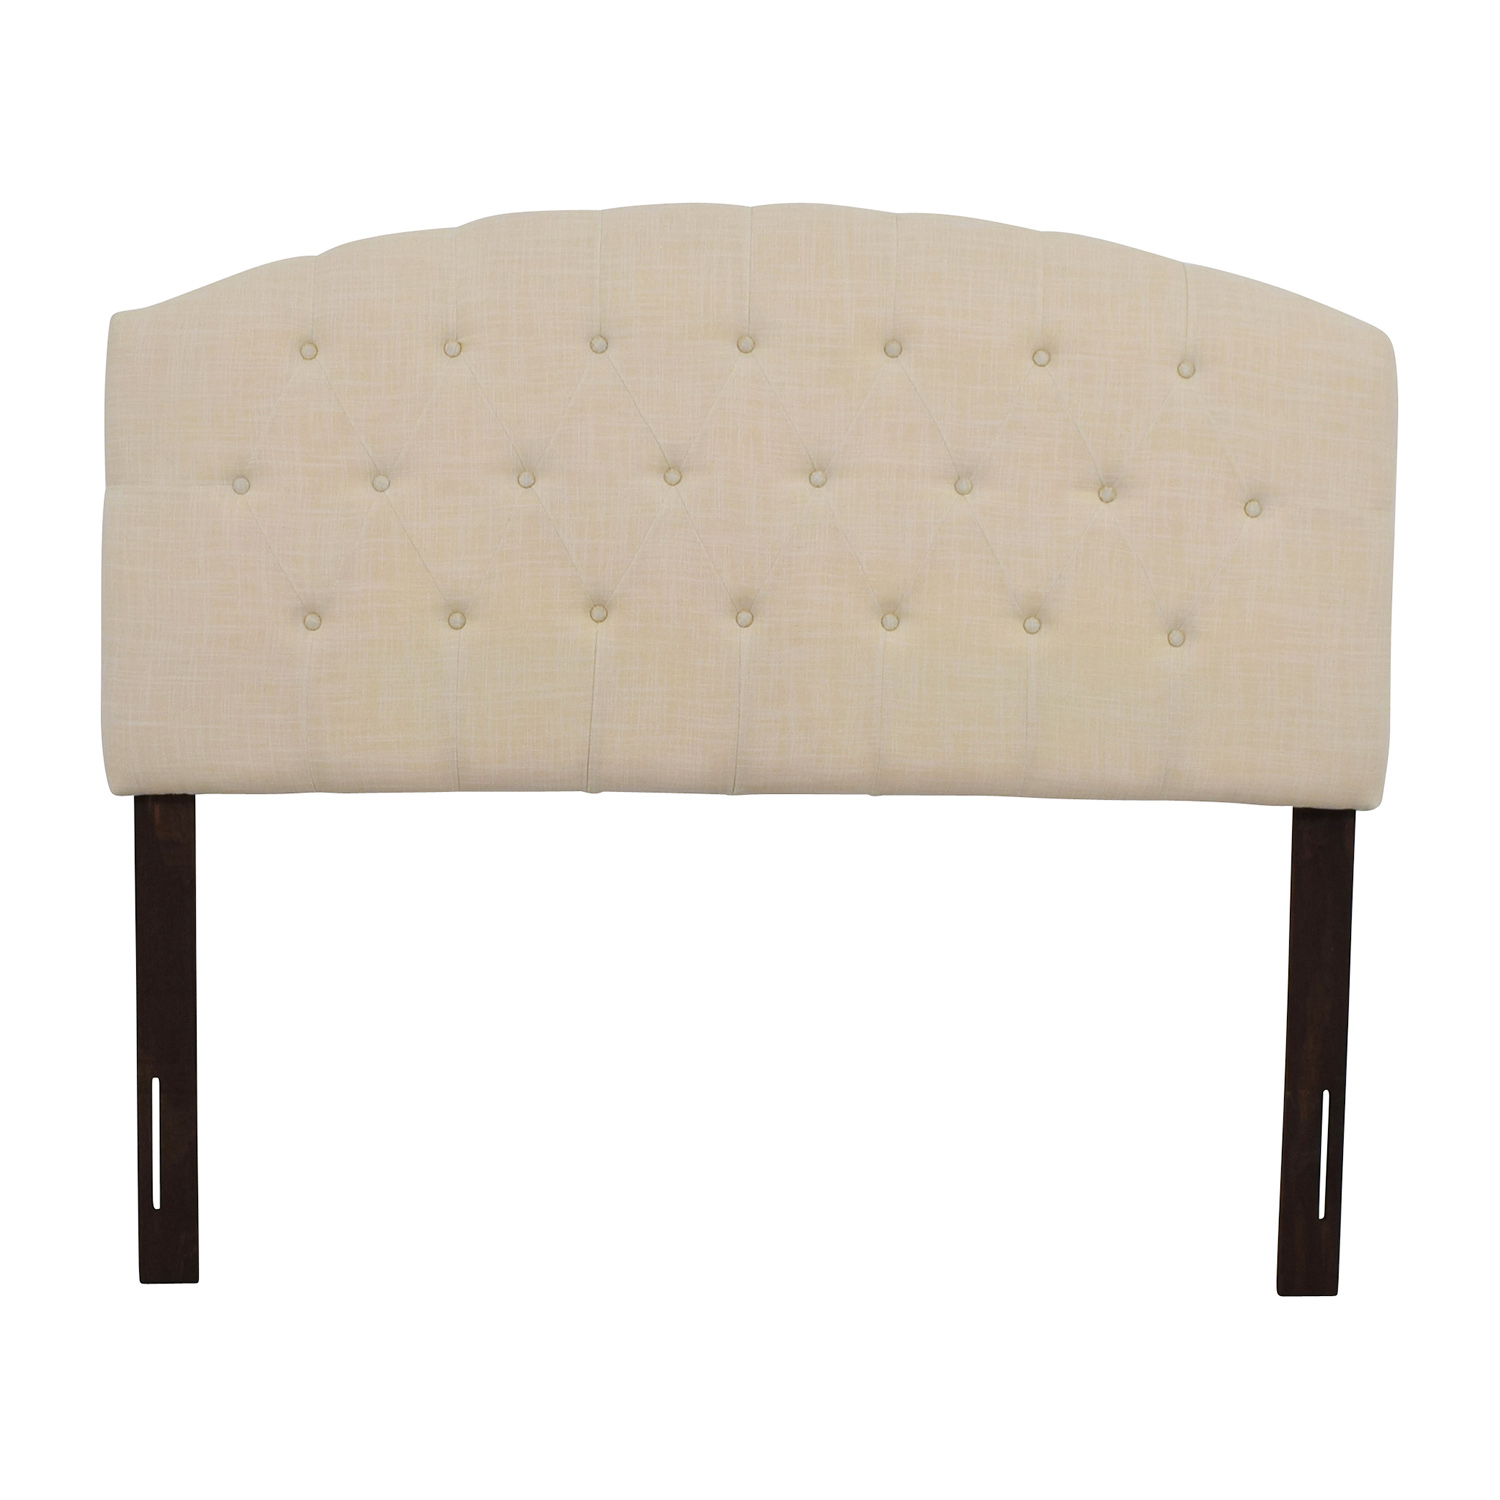 buy Humble + Haute Ivory Linen Blend Curved Upholstered Headboard Humble + Haute Headboards